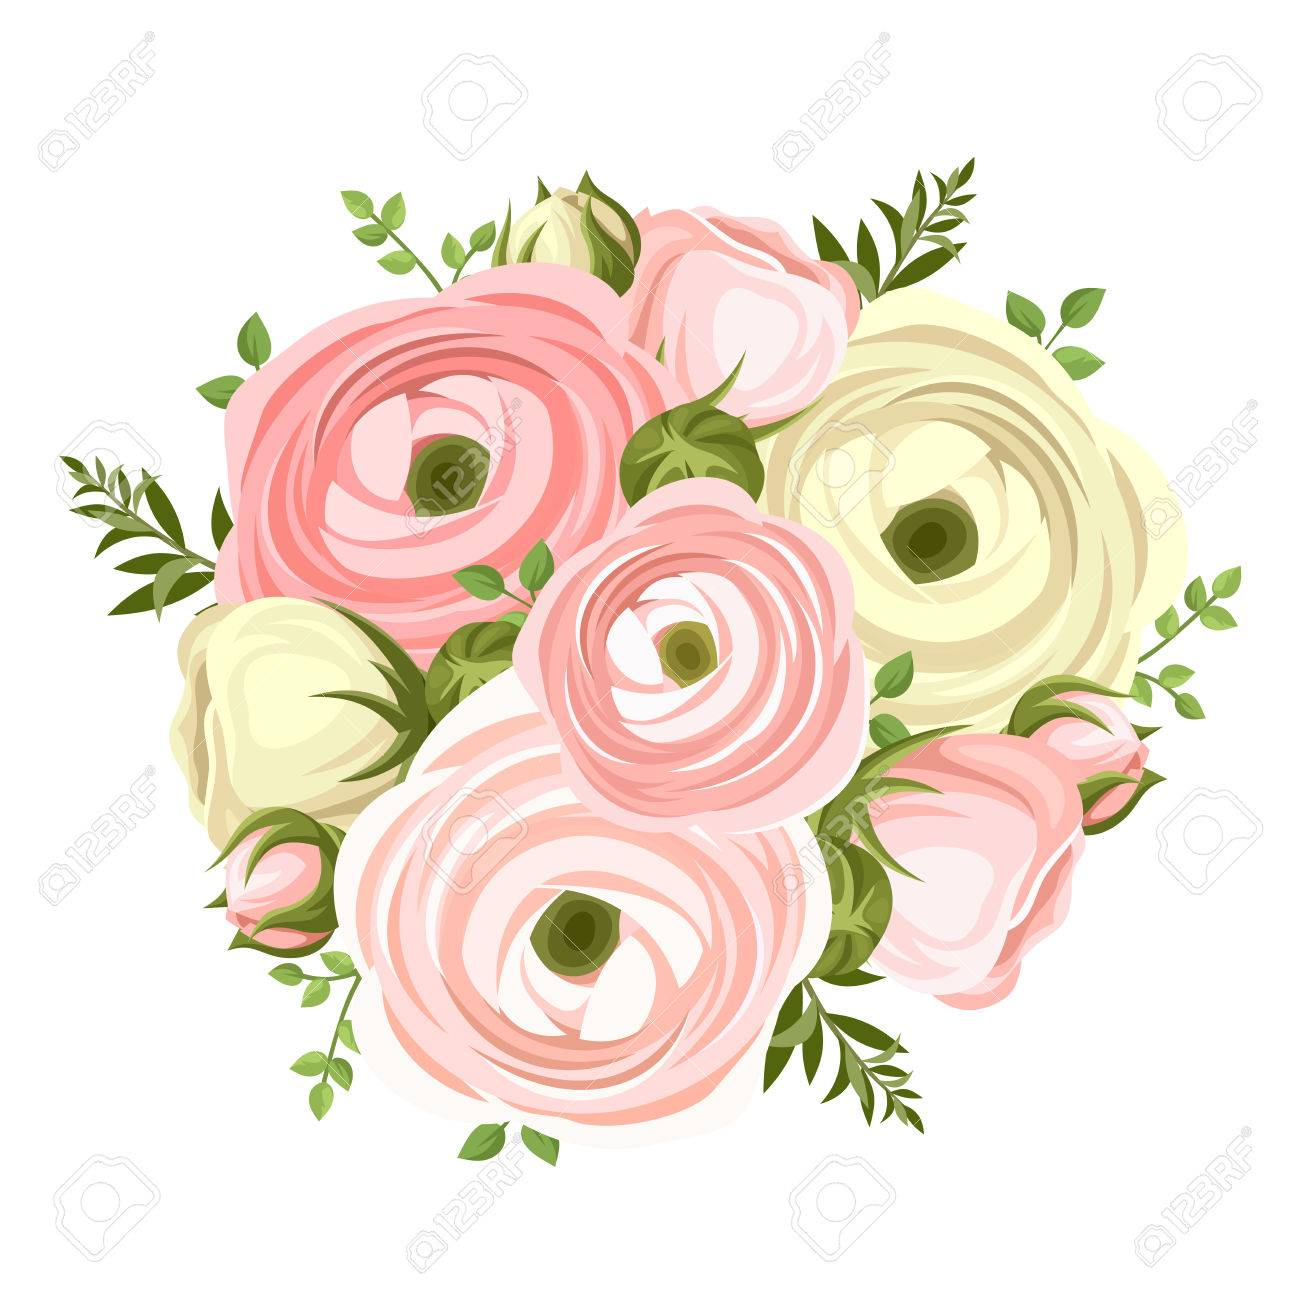 Bouquet Of Pink And White Ranunculus Flowers Vector Illustration